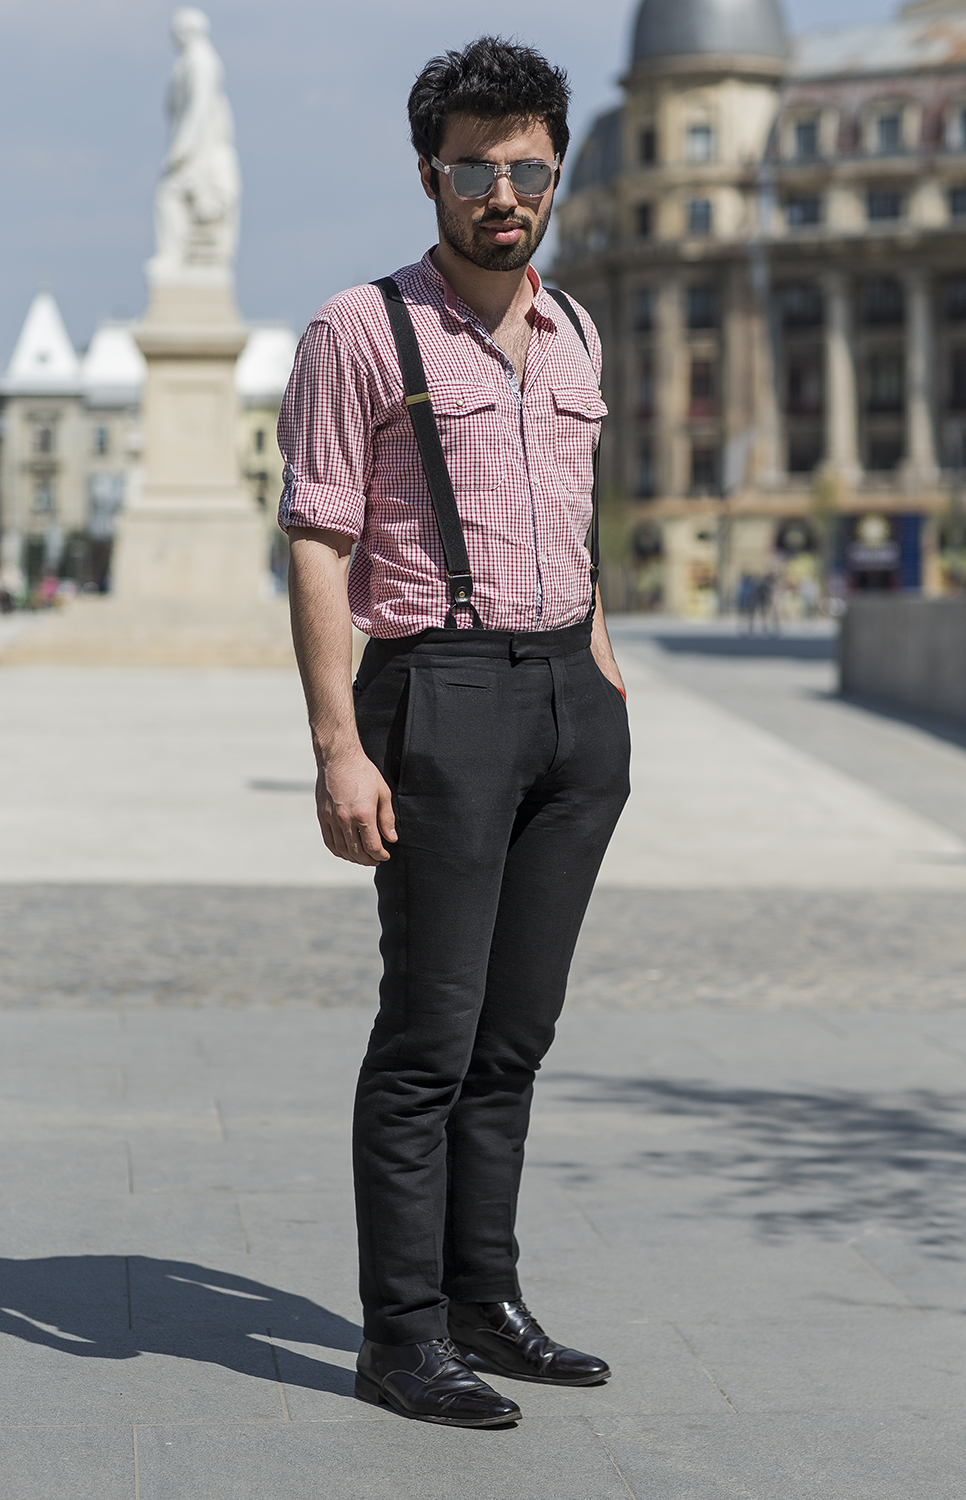 Street Fashion Men  Bucharest.jpg